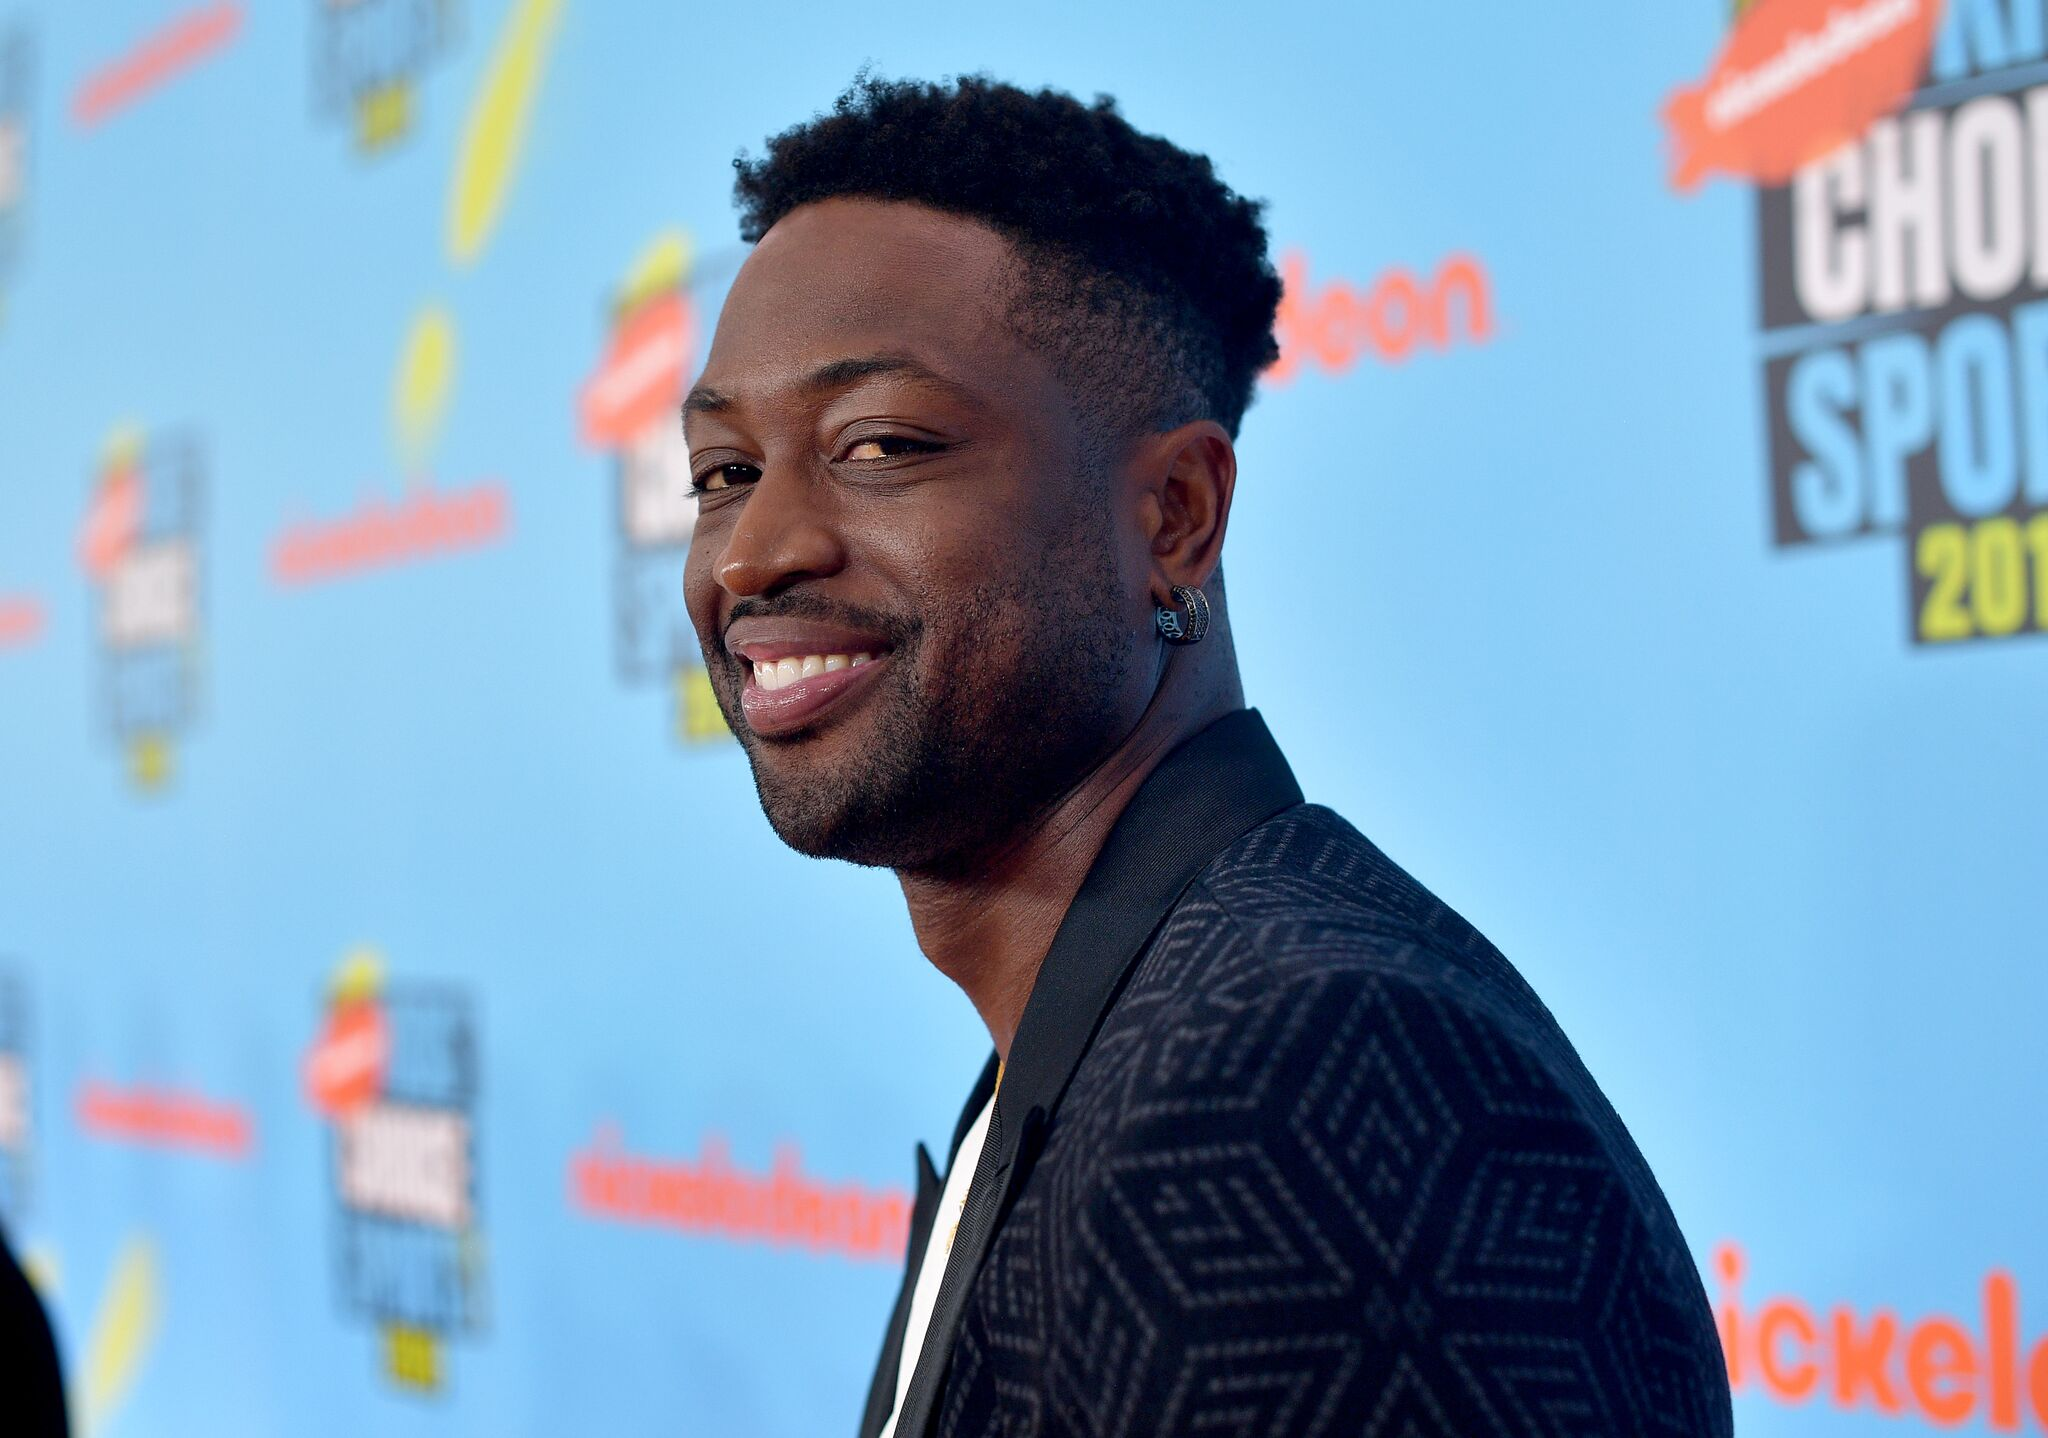 Dwyane Wade attends Nickelodeon Kids' Choice Sports 2019 at Barker Hangar on July 11, 2019 | Photo: Getty Images